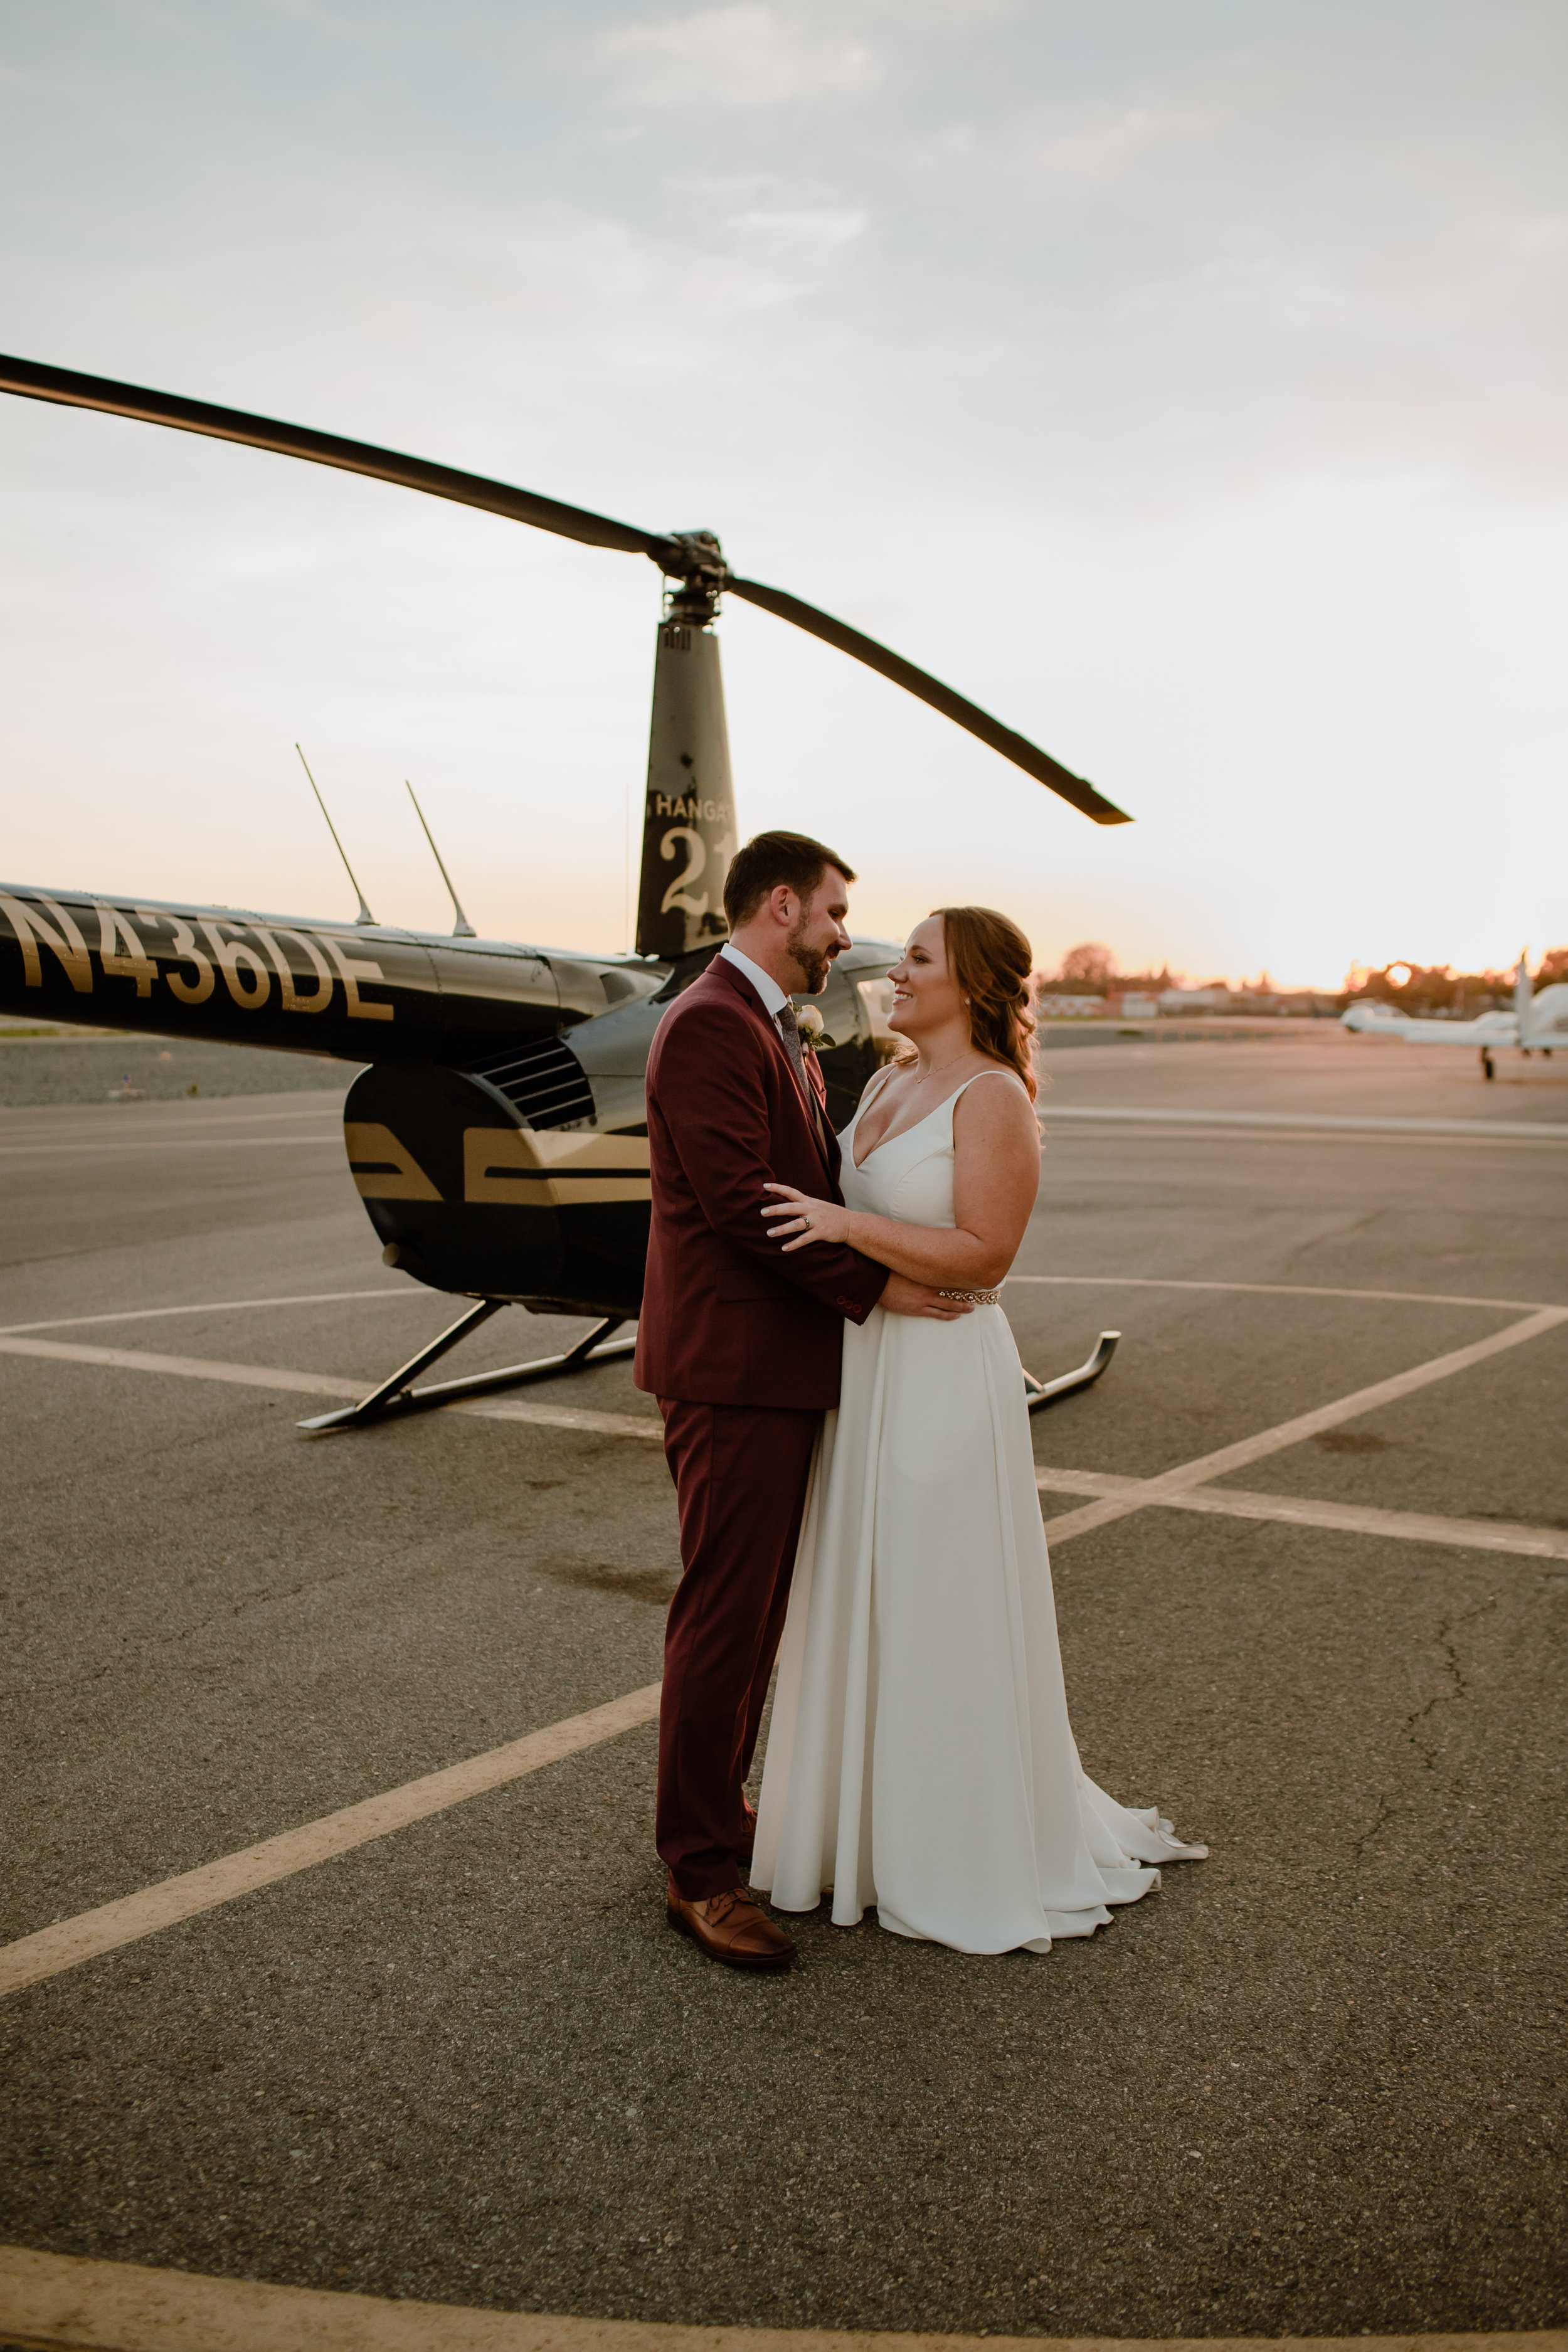 Laurie_and_Dino_Hangar_21_Helicopter_s_Fullerton__CA_Wedding_-_Eve_Rox_Photography-480.jpg